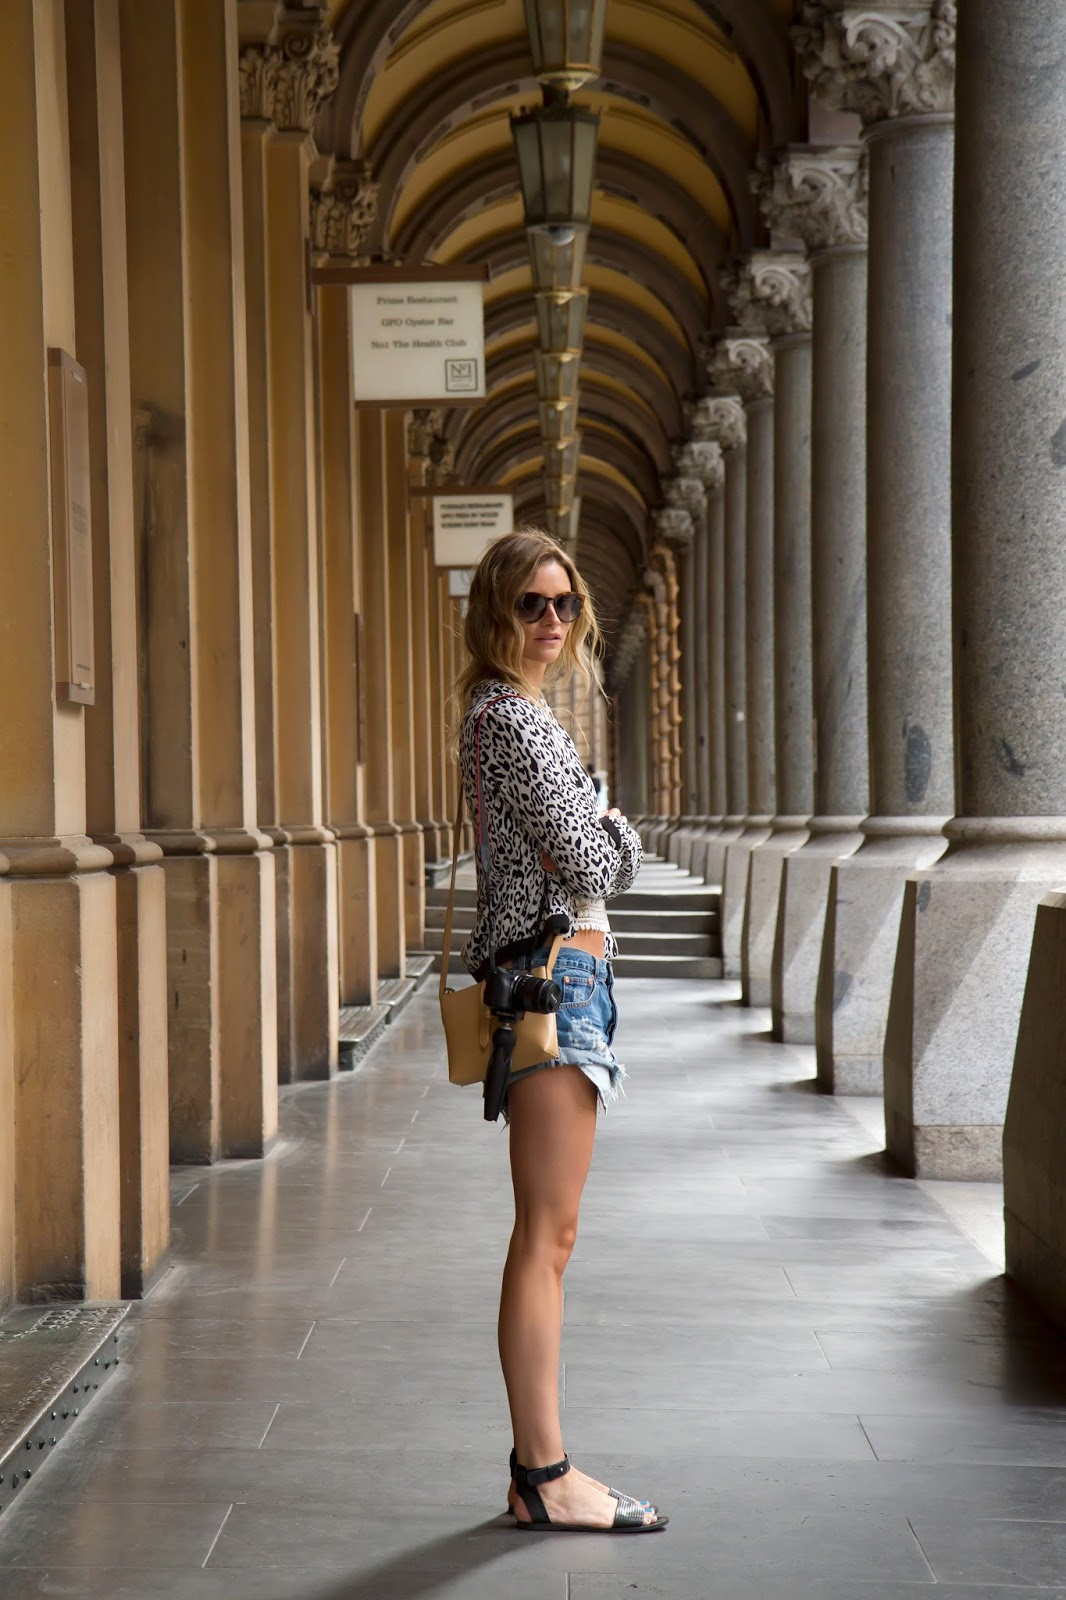 Fashion Blogger and Digital Nomad Alison Hutchinson in Sydney, Australia